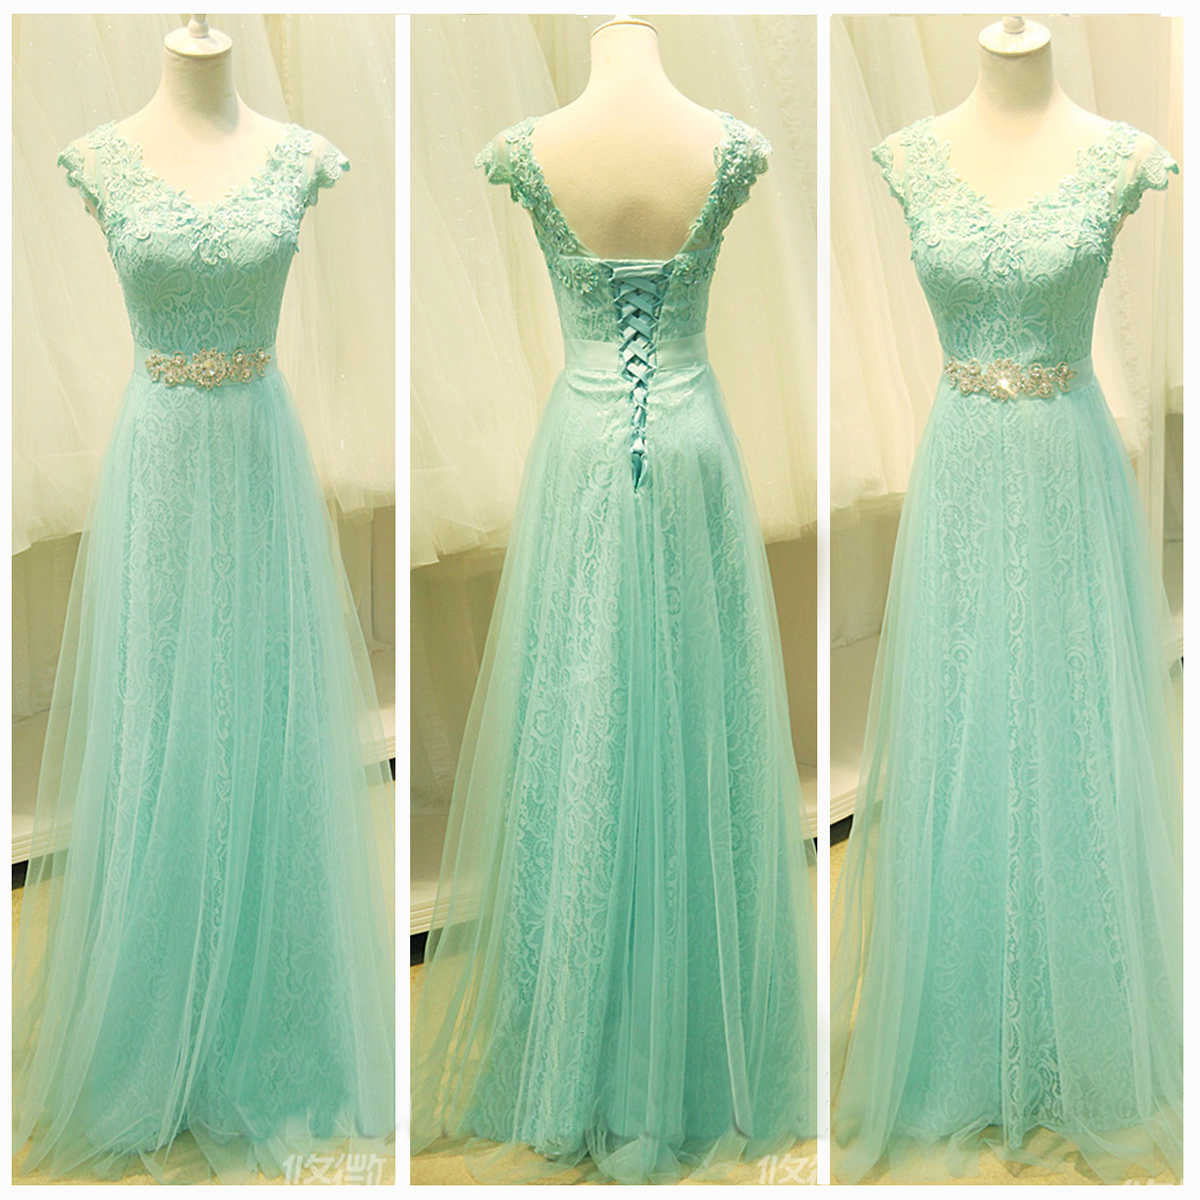 Custom Cheap Cap Sleeves Mint Green Lace Long Prom Dresses